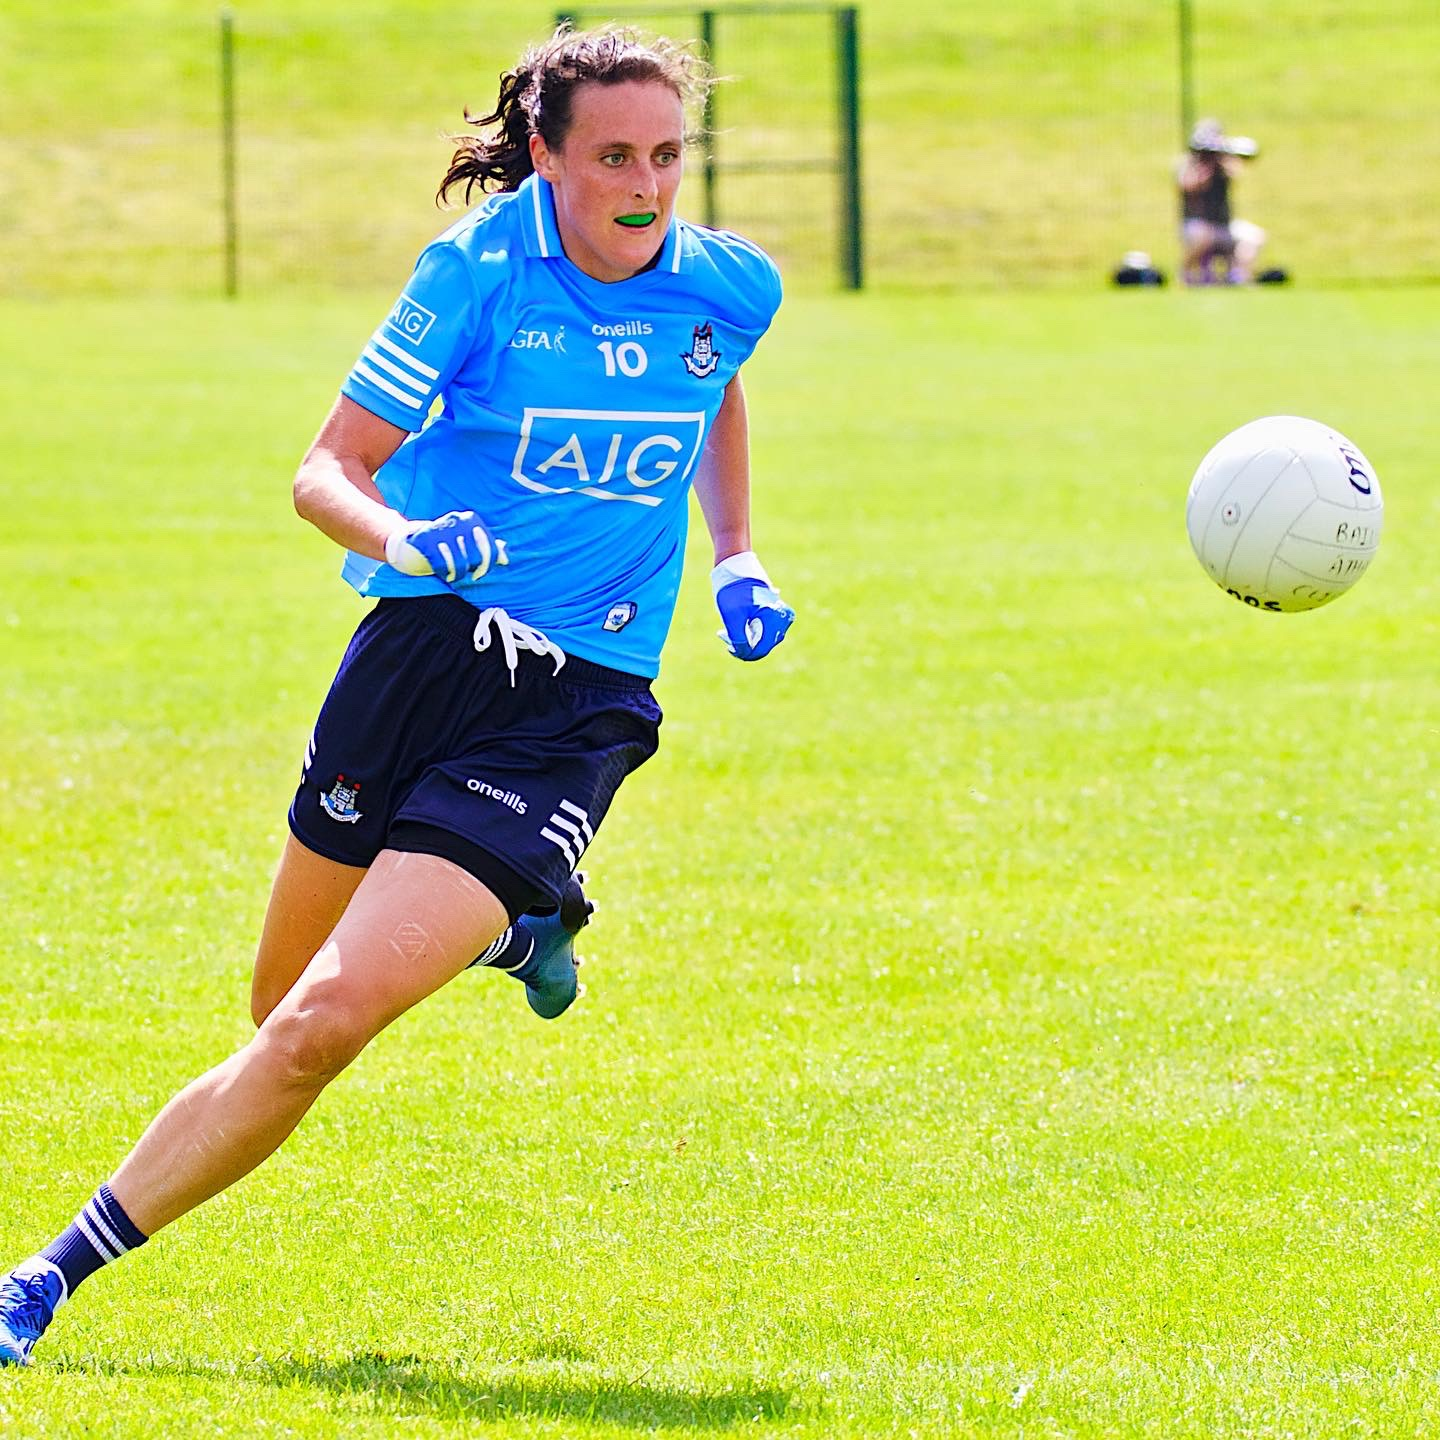 Dublin's Hannah Tyrrell in action against Waterford, the Sky Blues face Donegal this Bank Holiday Monday in the TG4 Senior All Ireland quarter final.